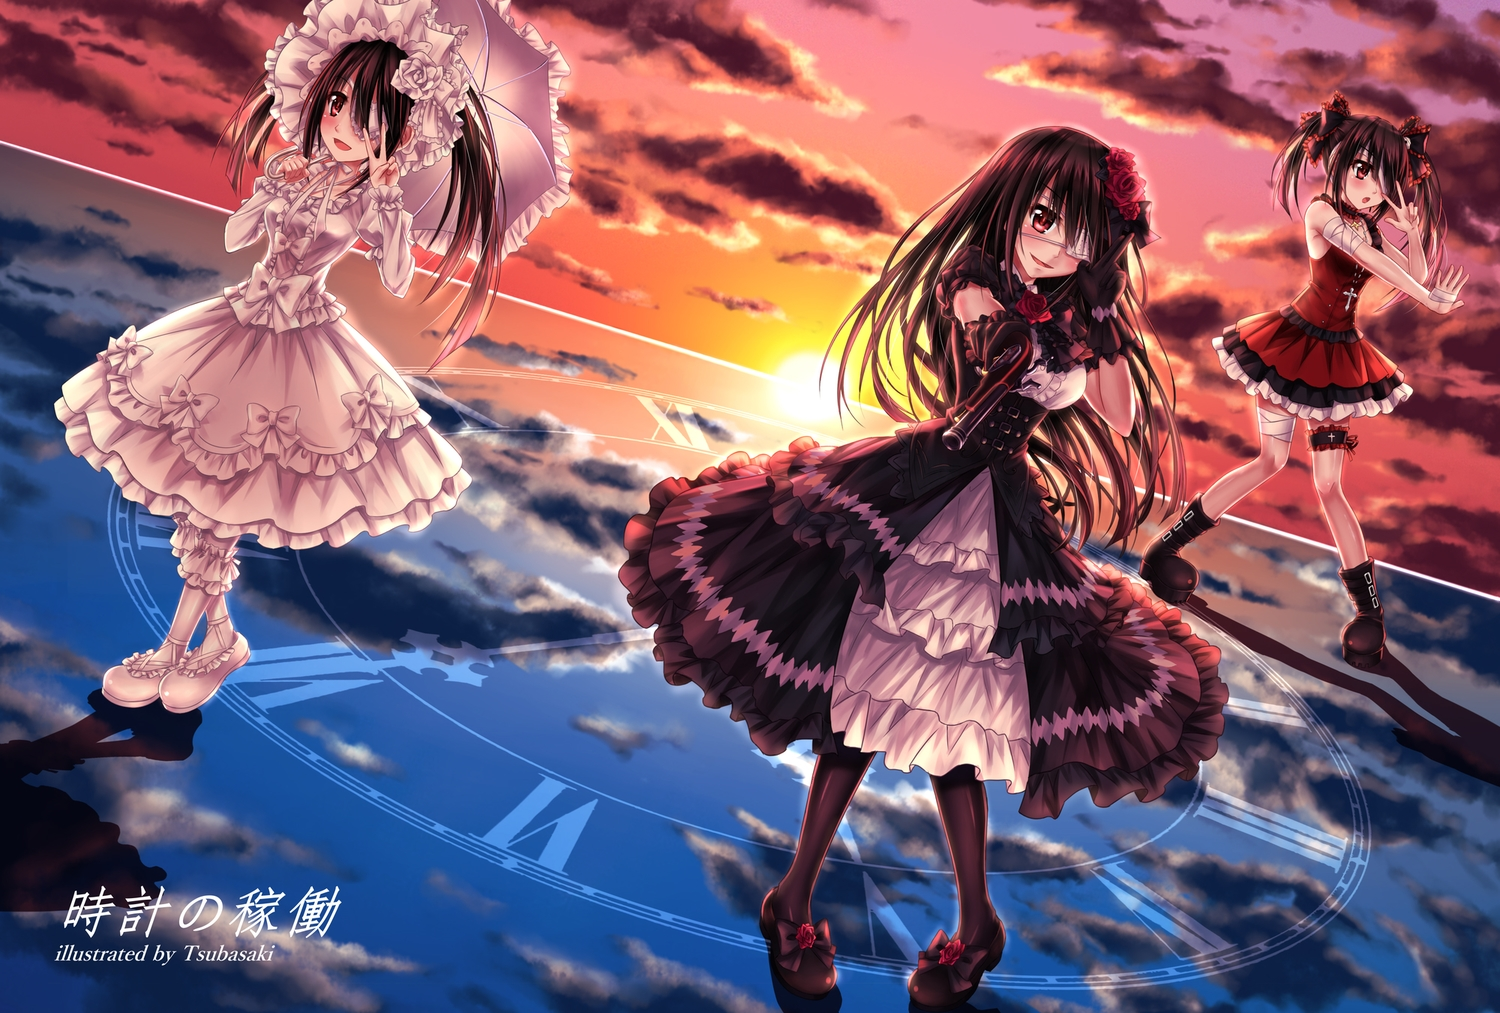 bandage bicolored_eyes black_hair boots bow clouds date_a_live dress eyepatch garter gloves goth-loli gun headdress lolita_fashion long_hair pantyhose reflection ribbons sky sunset tokisaki_kurumi tsubasaki twintails watermark weapon